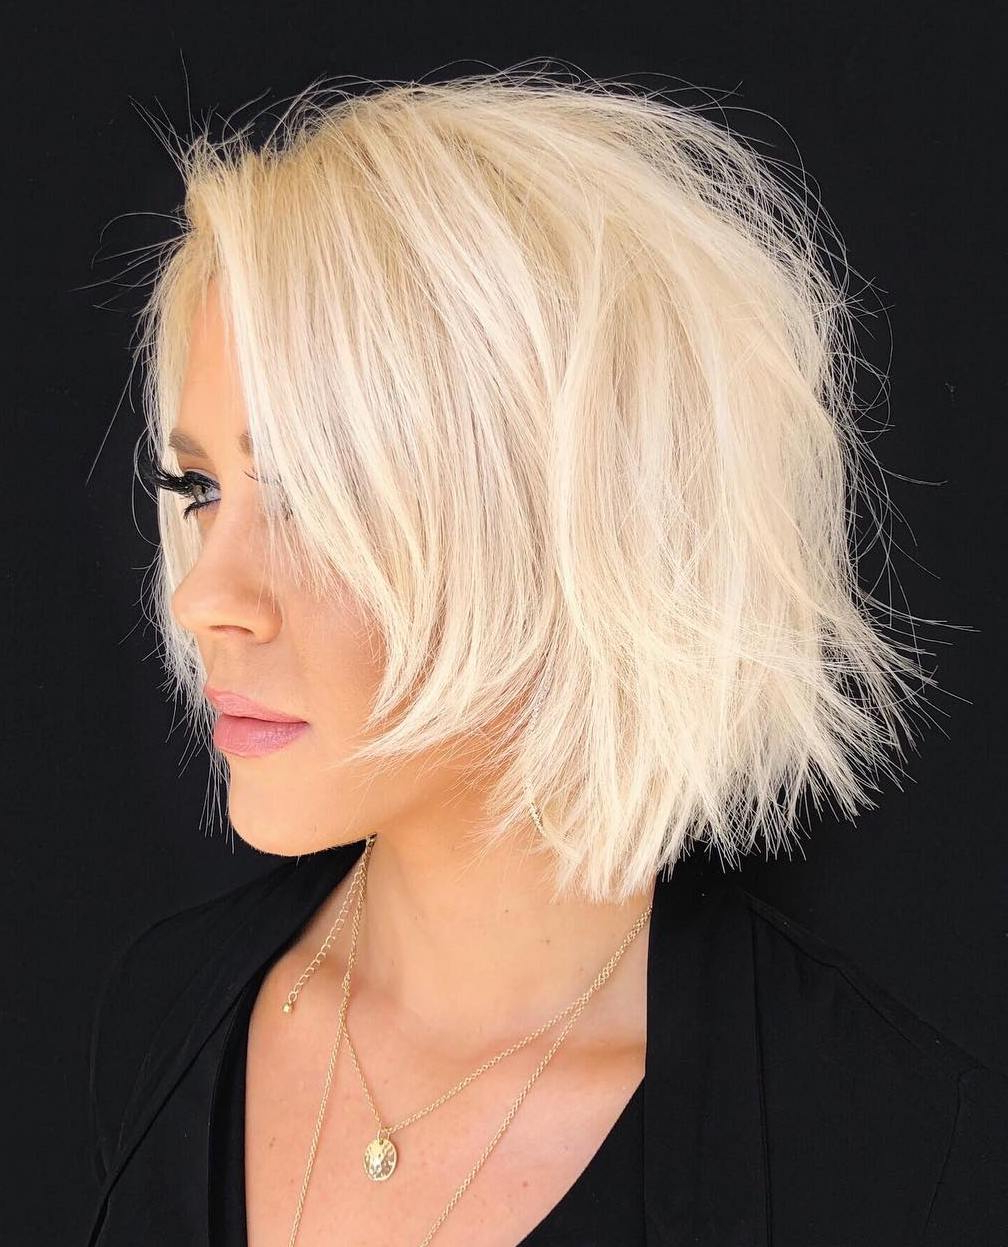 40 Modern Shag Haircuts For Women To Make A Splash With Silver White Shaggy Haircuts (View 10 of 20)